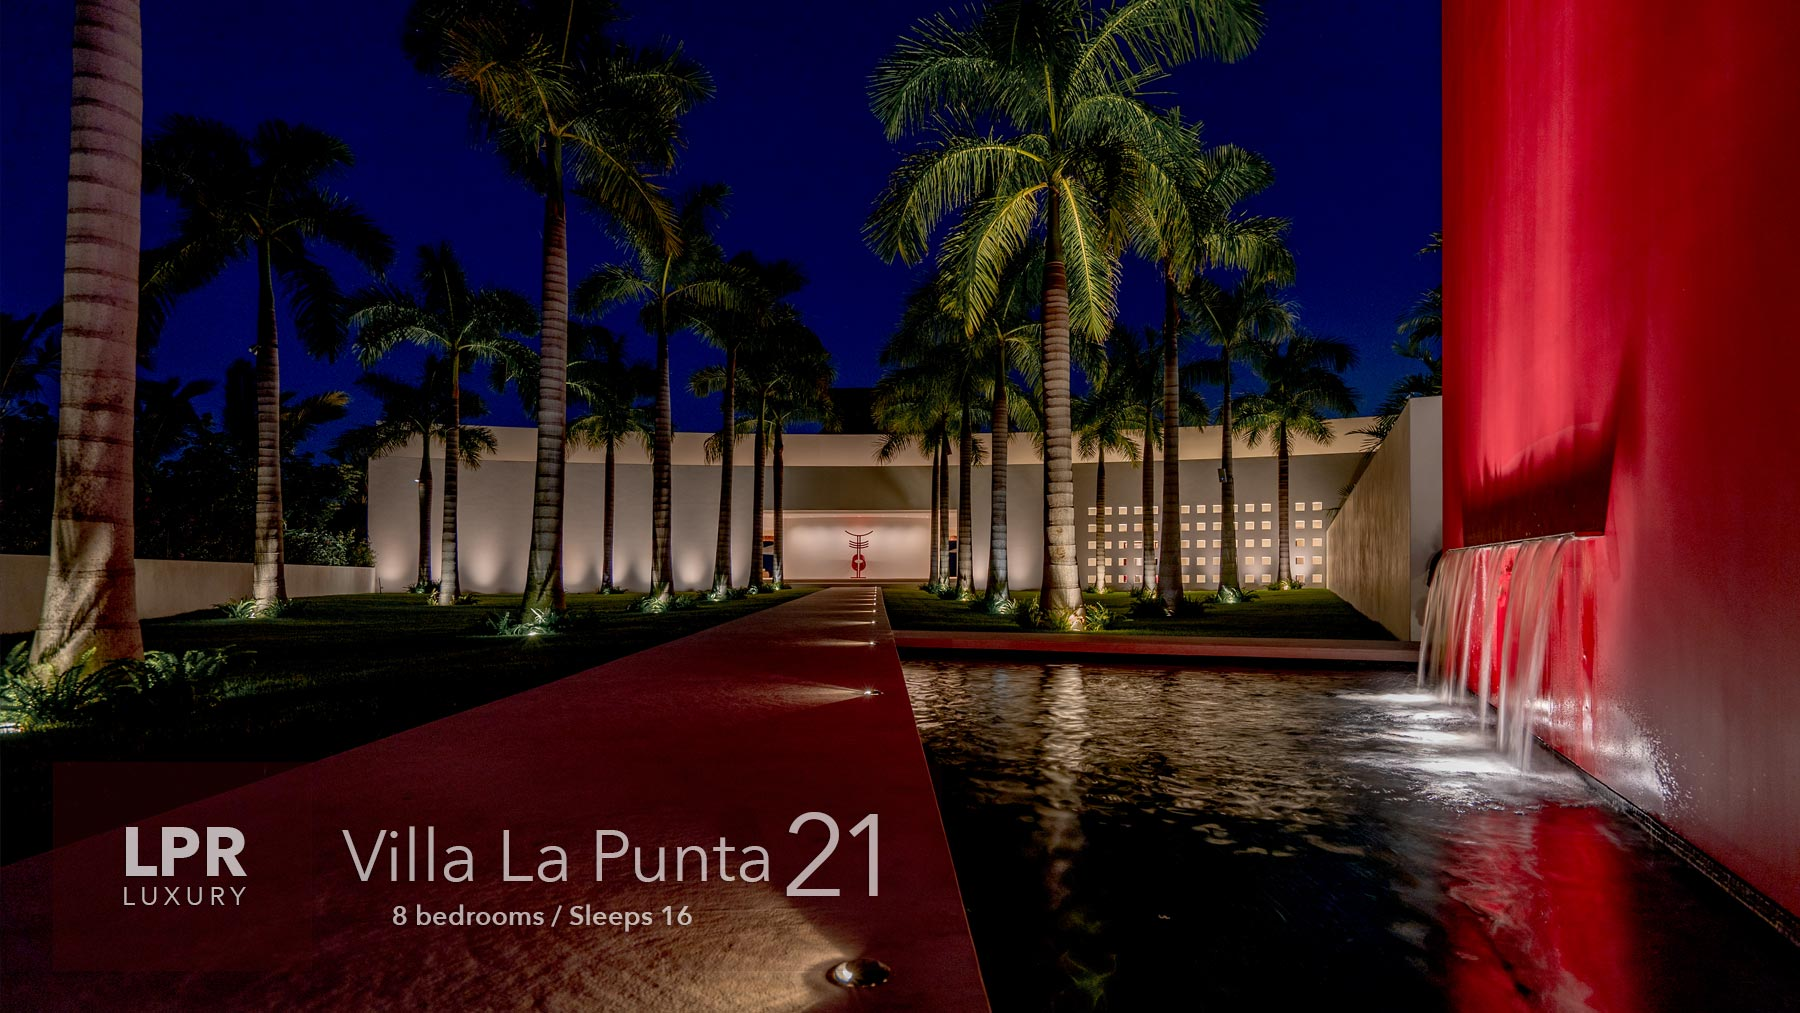 Villa La Punta 21 - Punta Mita Resort - Mexico Luxury Vacation Rentals and Resort Real Estate